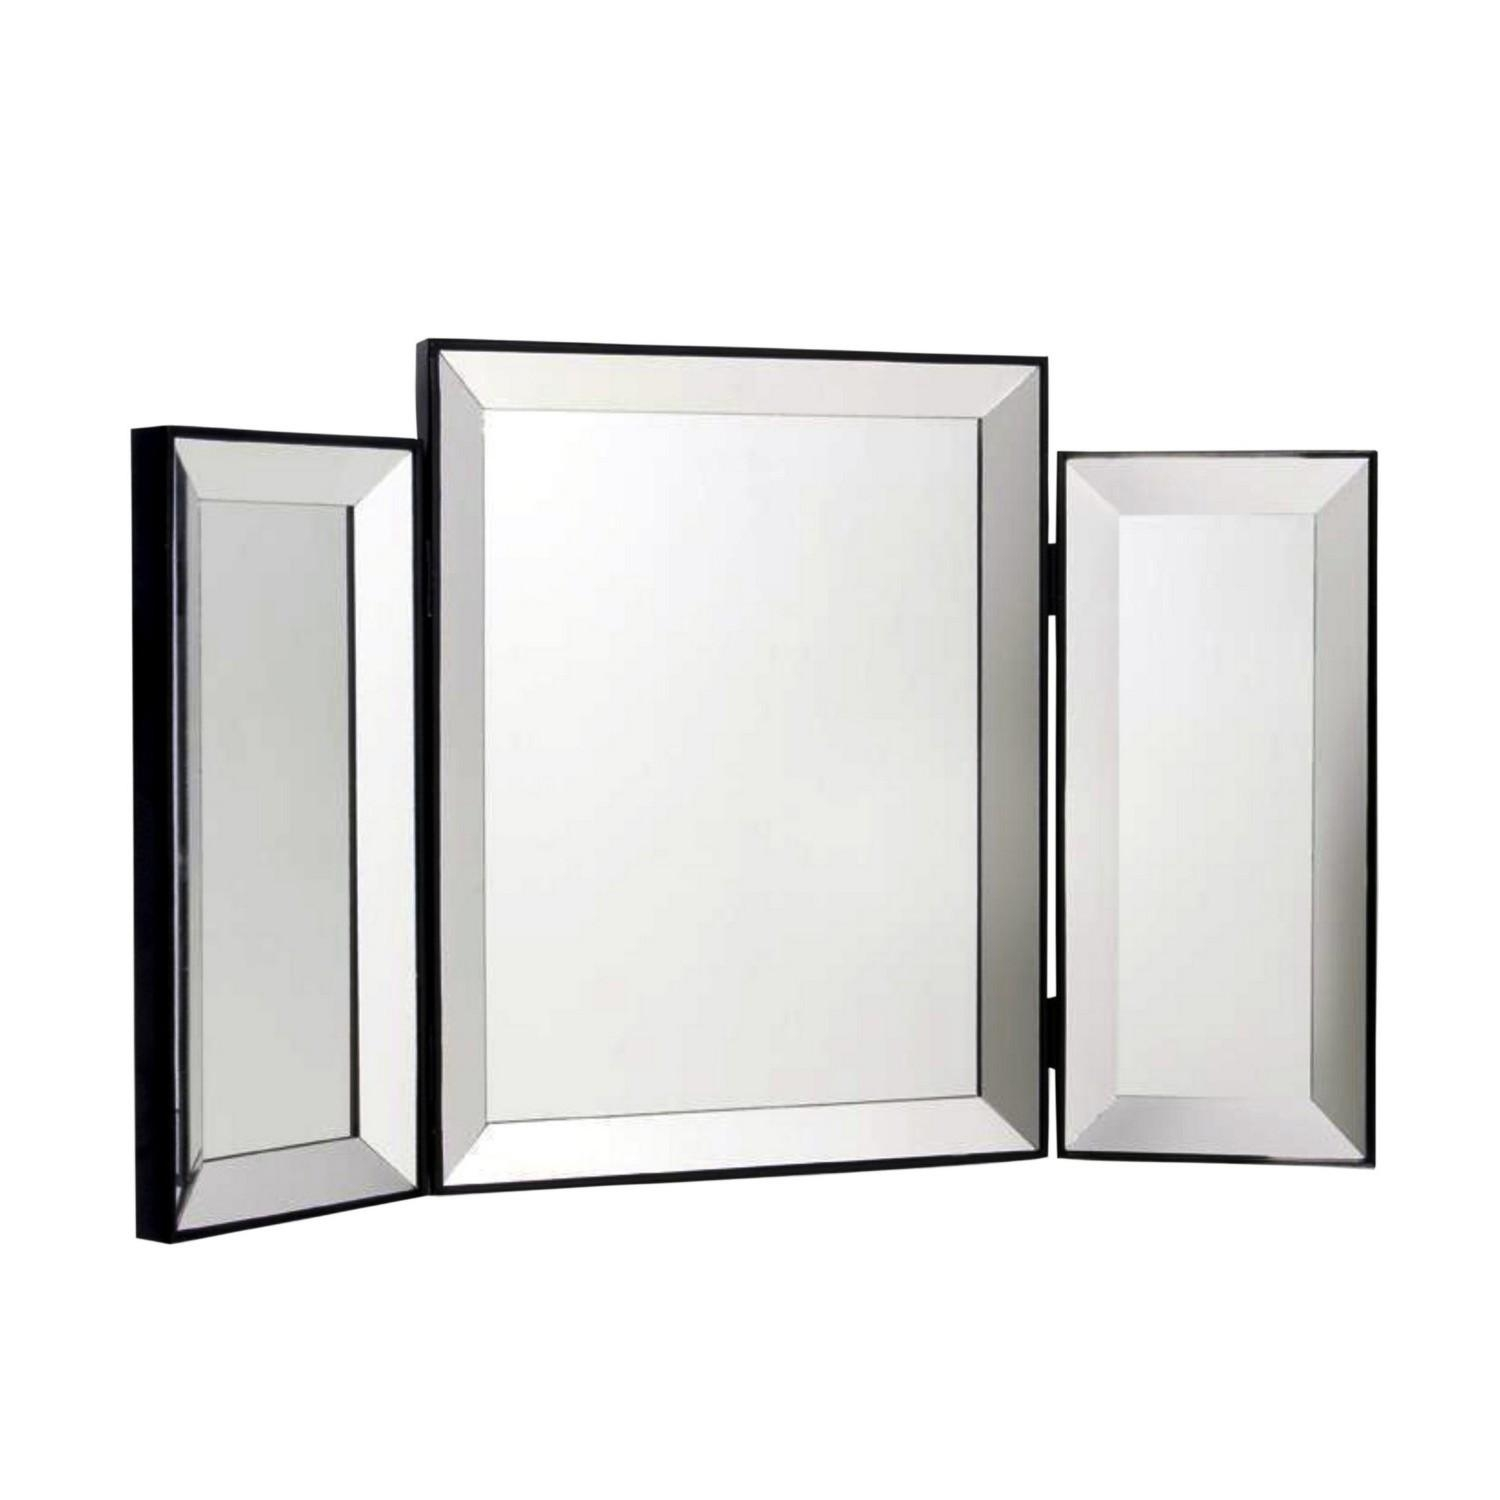 White Dressing Table Mirror With Regard To Dressing Table Mirrors (View 8 of 20)